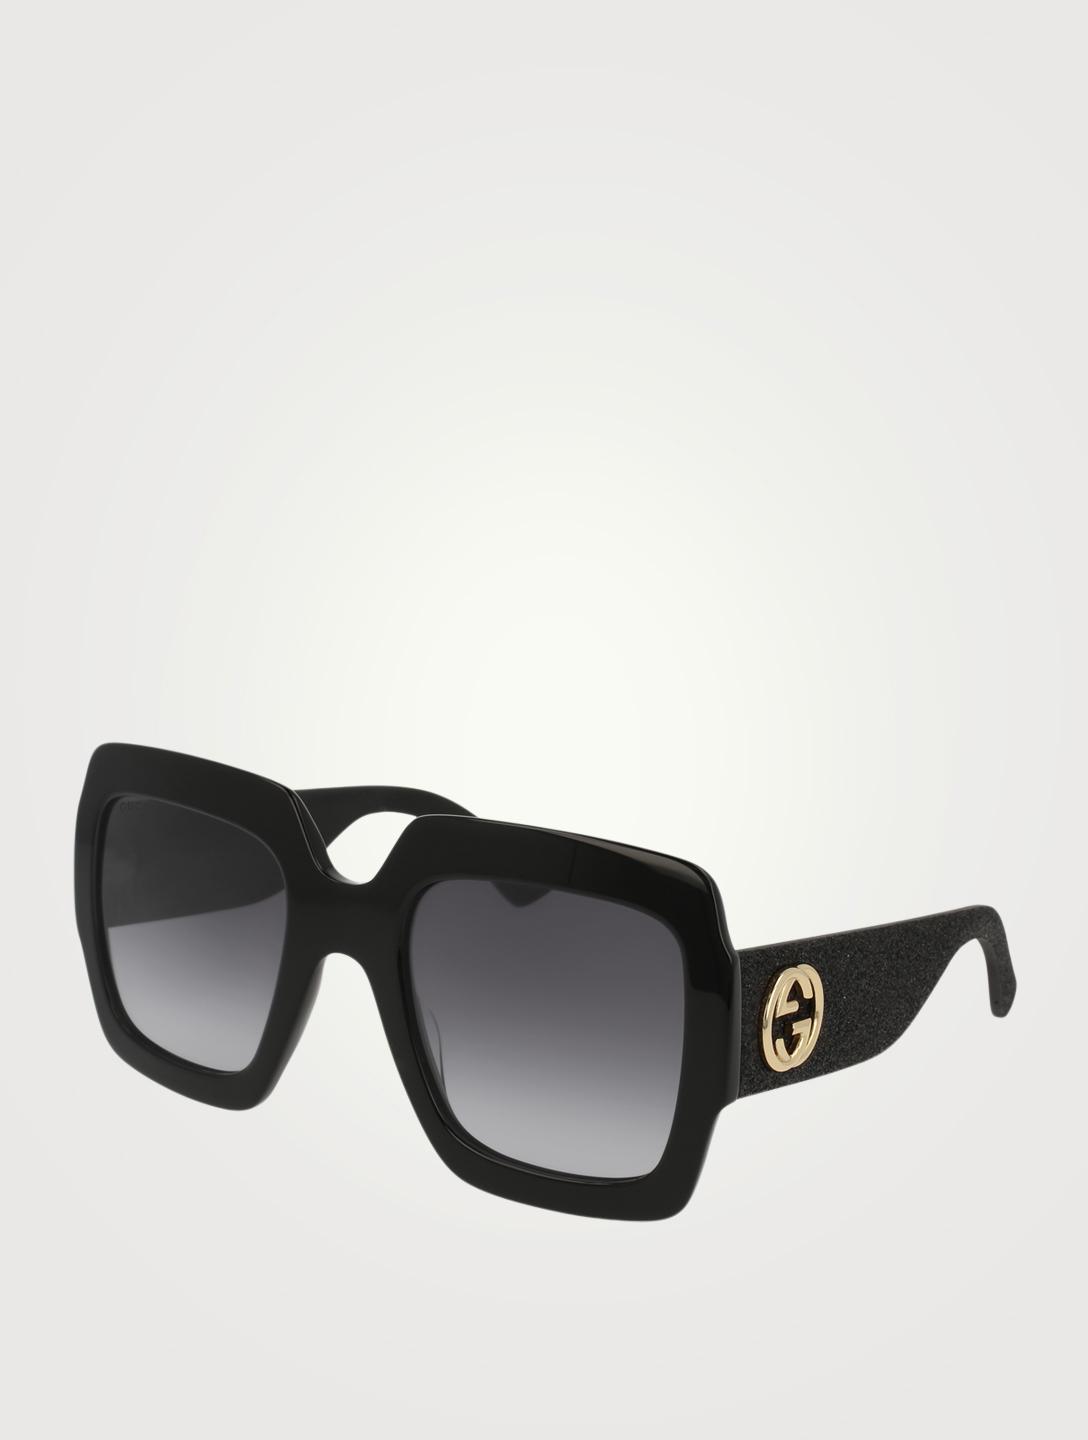 ba7d9c4dd4a GUCCI Oversized Square Sunglasses Women s Black ...